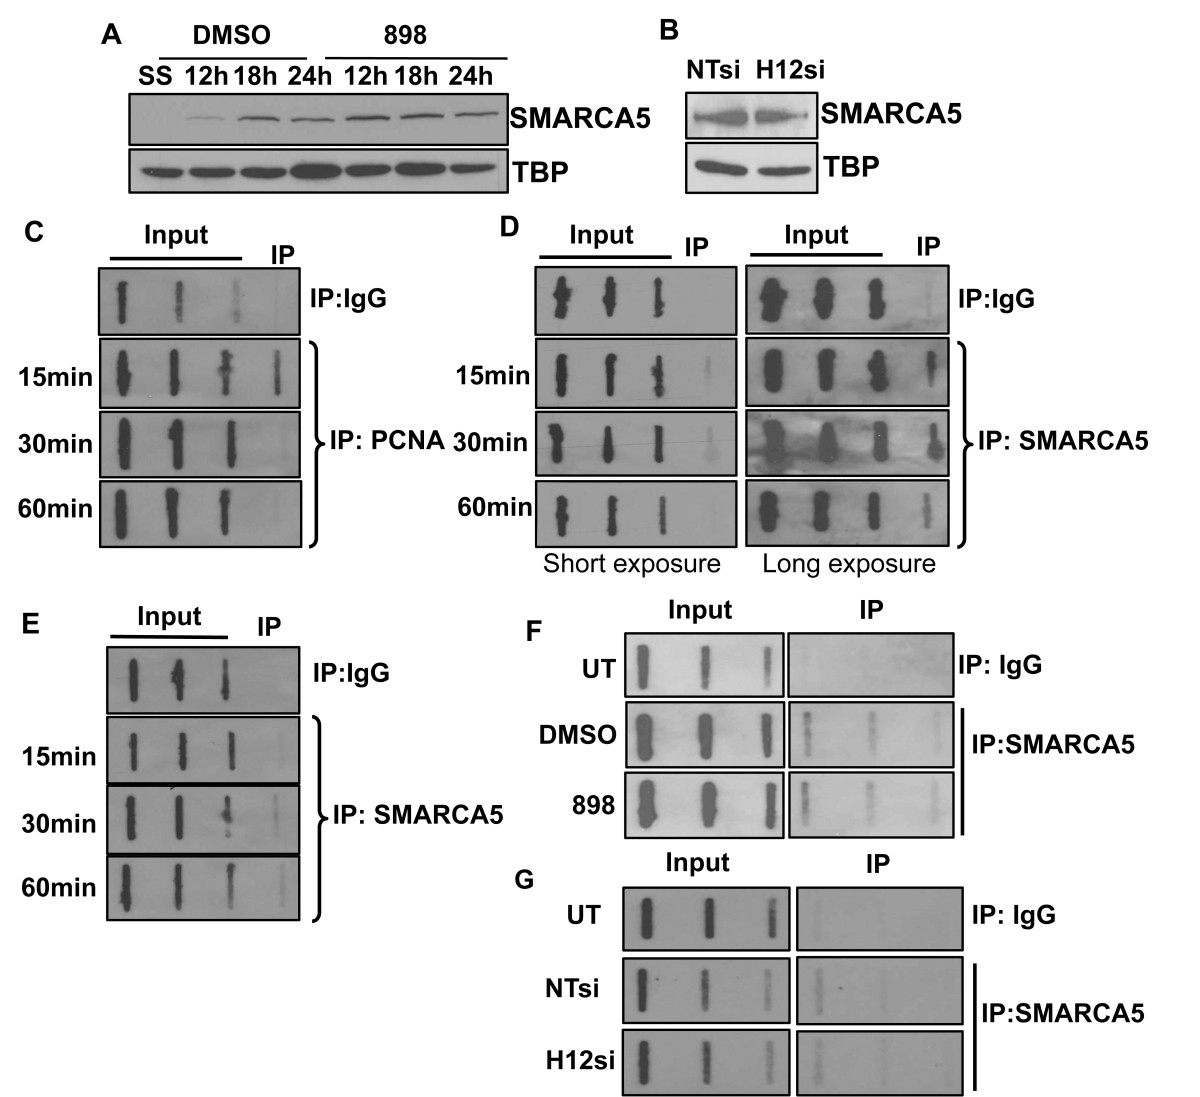 http://static-content.springer.com/image/art%3A10.1186%2F1756-8935-6-27/MediaObjects/13072_2013_Article_298_Fig6_HTML.jpg